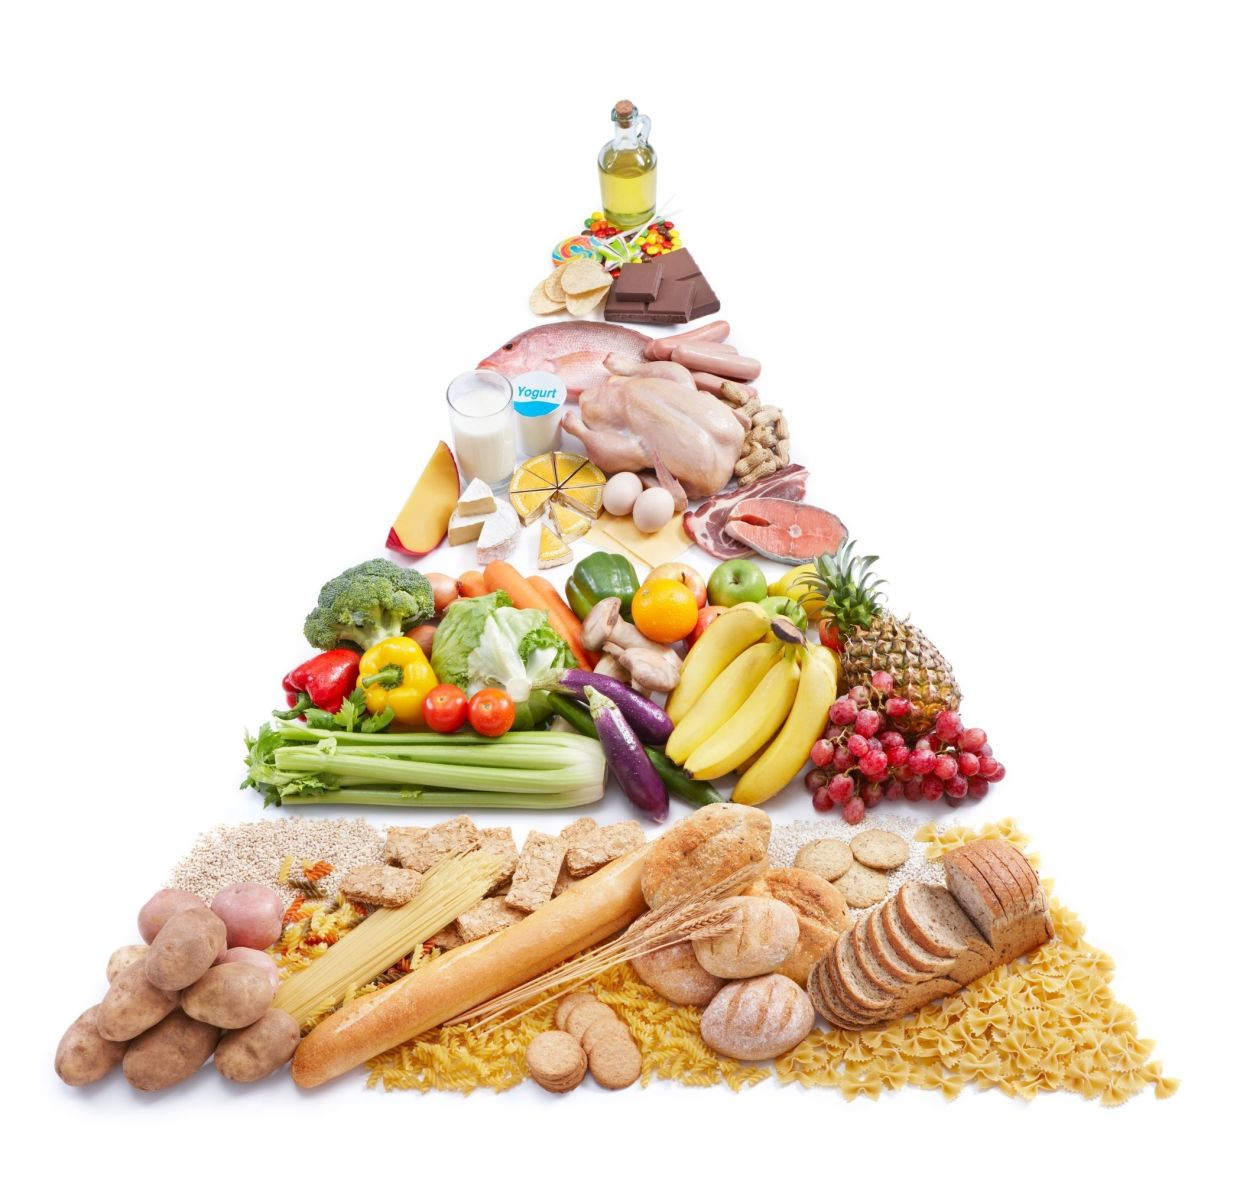 The Malaysian Food Pyramid is designed to help us eat healthy by showing the recommended daily servings for different food groups. — 123rf.com